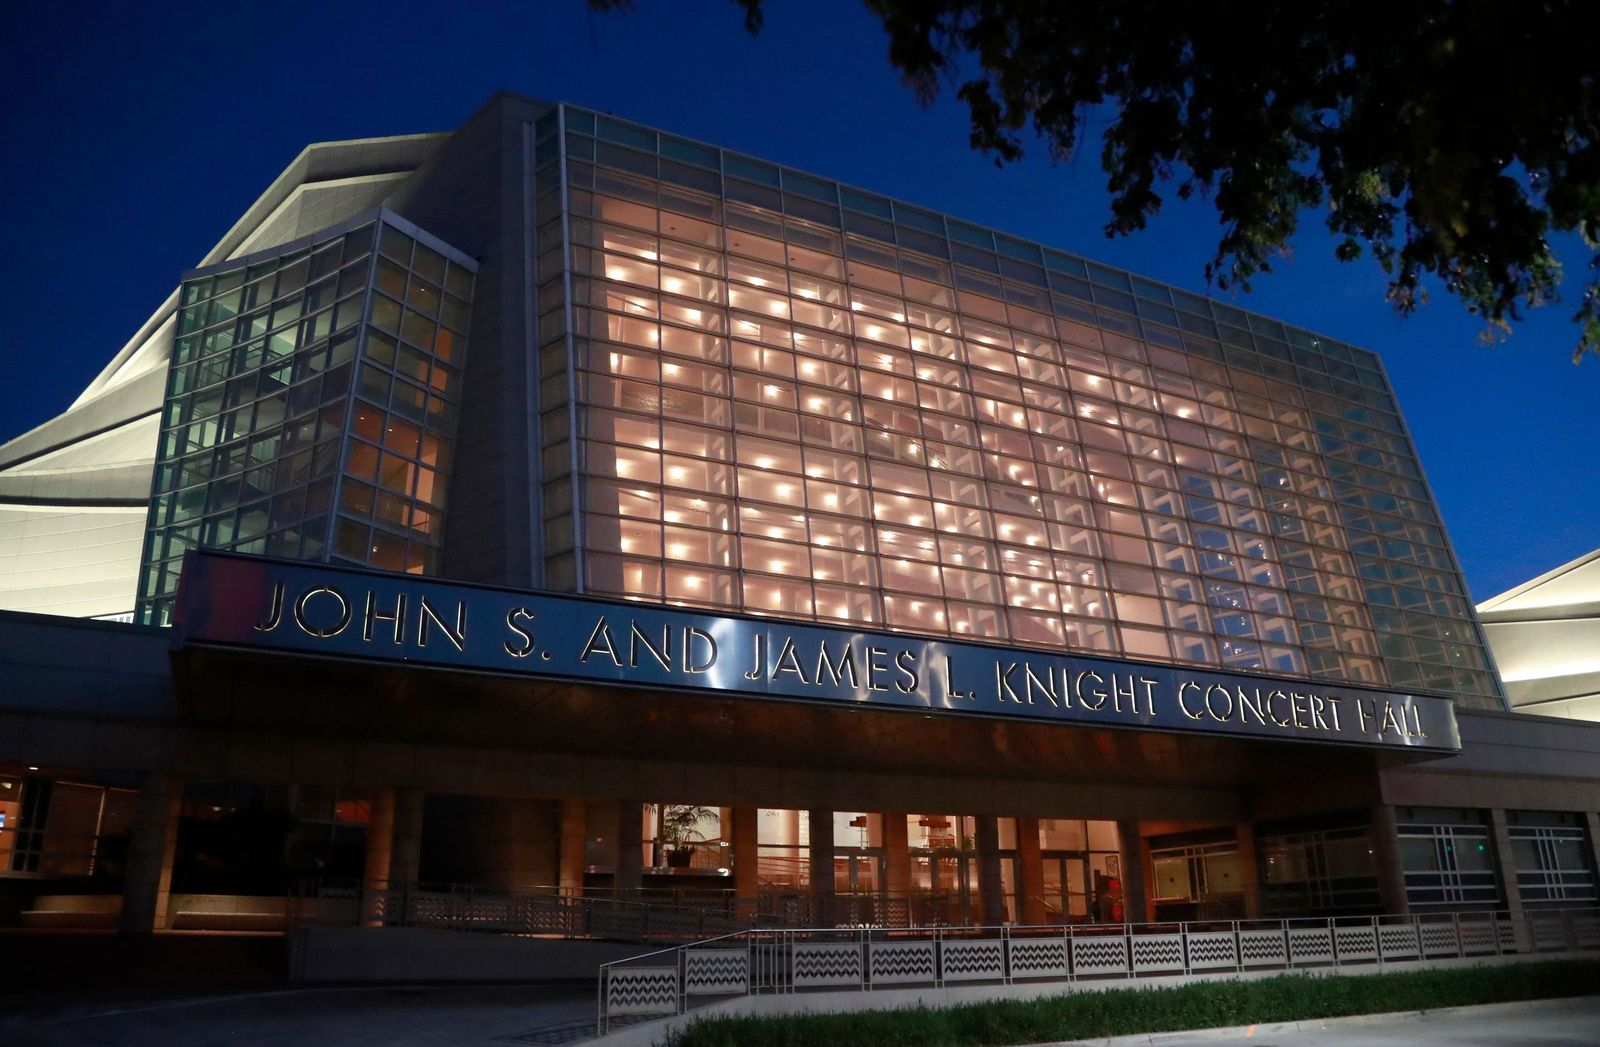 The Knight Concert Hall at the Adrienne Arsht Center for the Performing Arts of Miami-Dade County is shown, Friday, June 21, 2019, in Miami. (AP Photo/Wilfredo Lee)